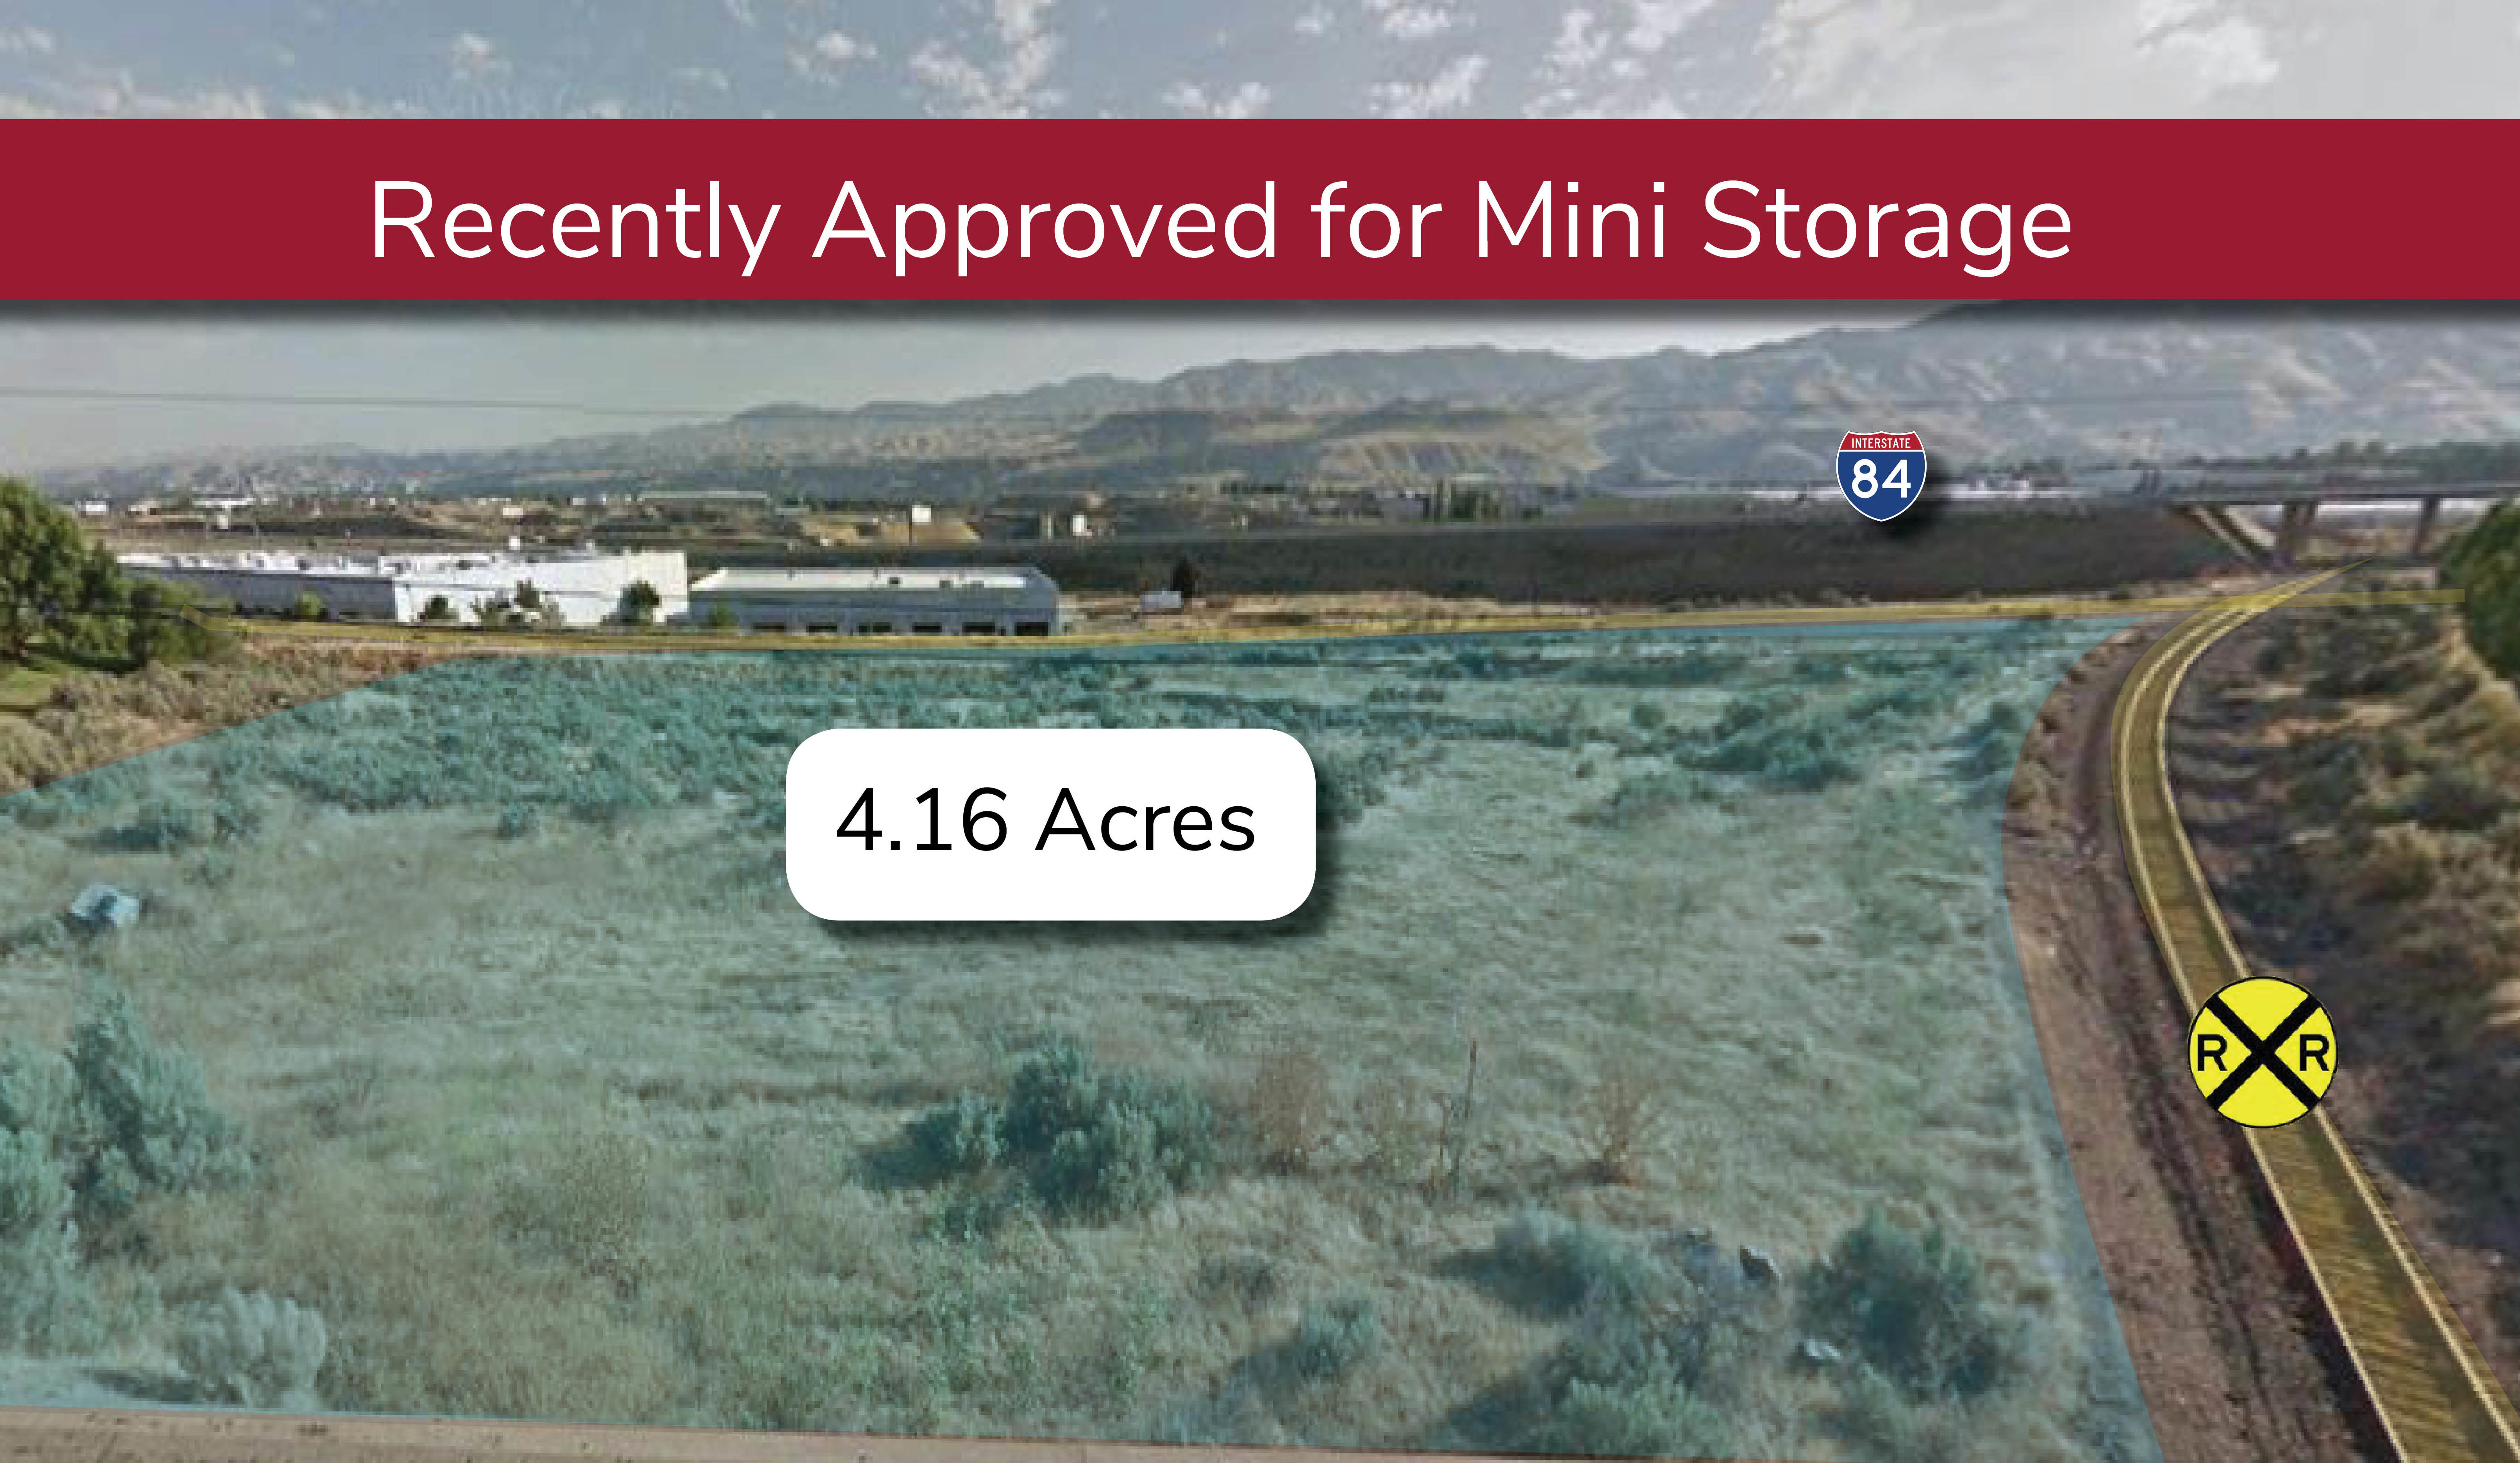 Industrial Land For Sale | Boise, ID - Lee & Associates